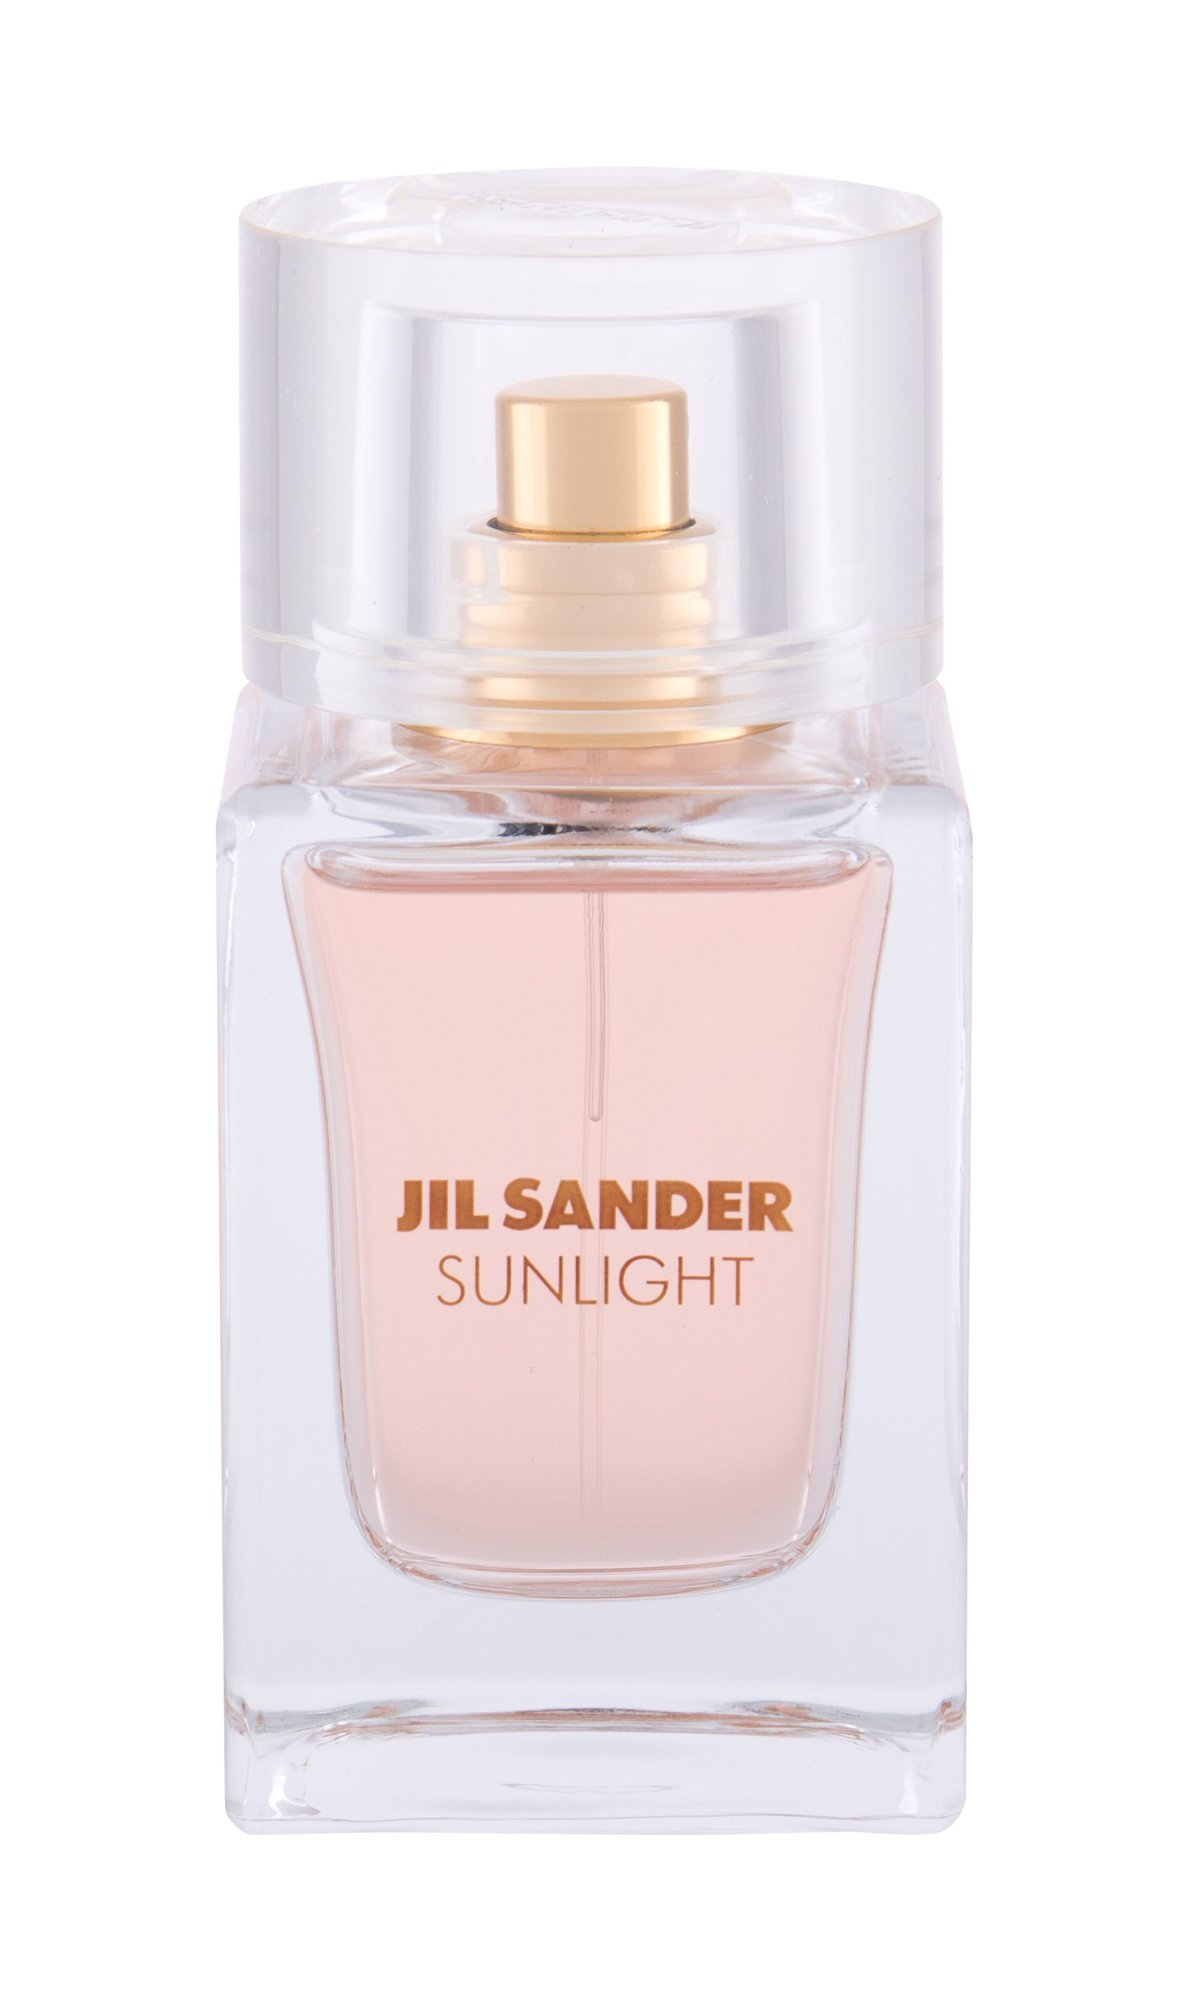 Jil Sander Sunlight Intense, edp 60ml